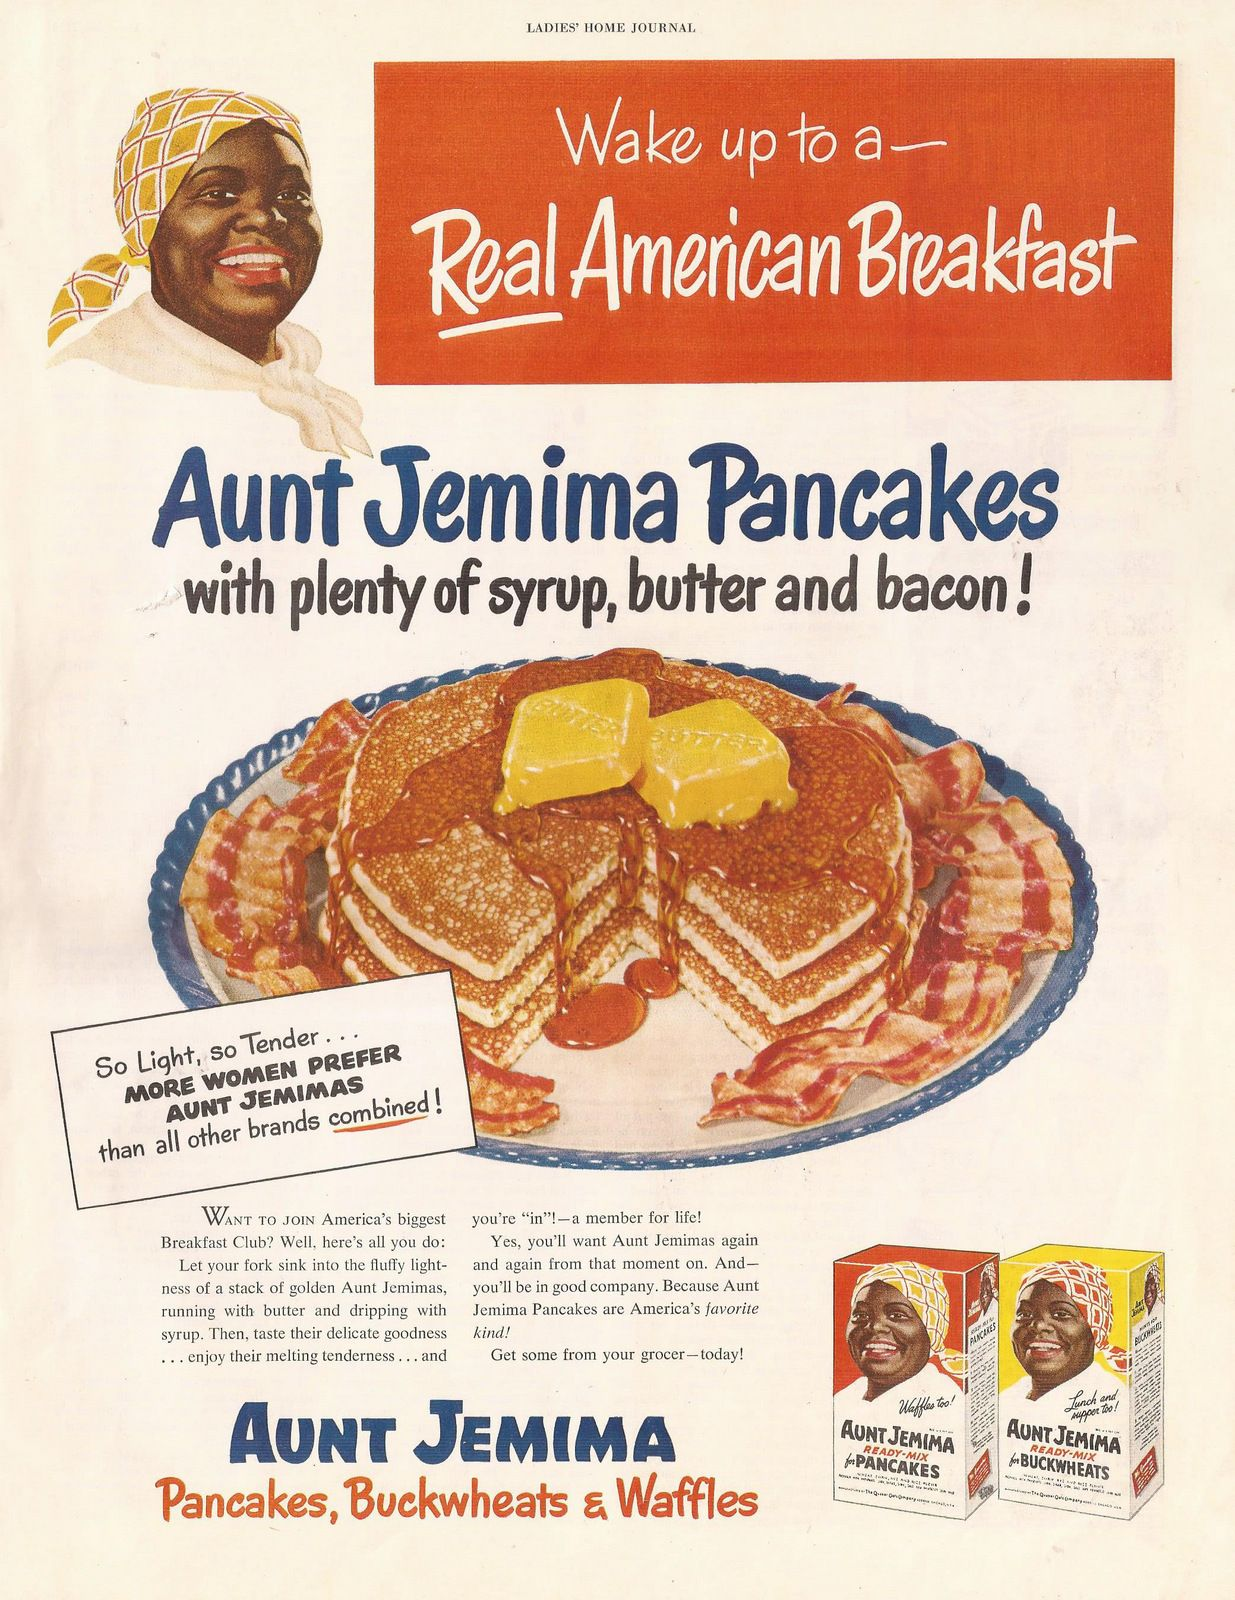 aunt jemima kitchen curtains 8 island pancakes ad from ladies 39 home journal